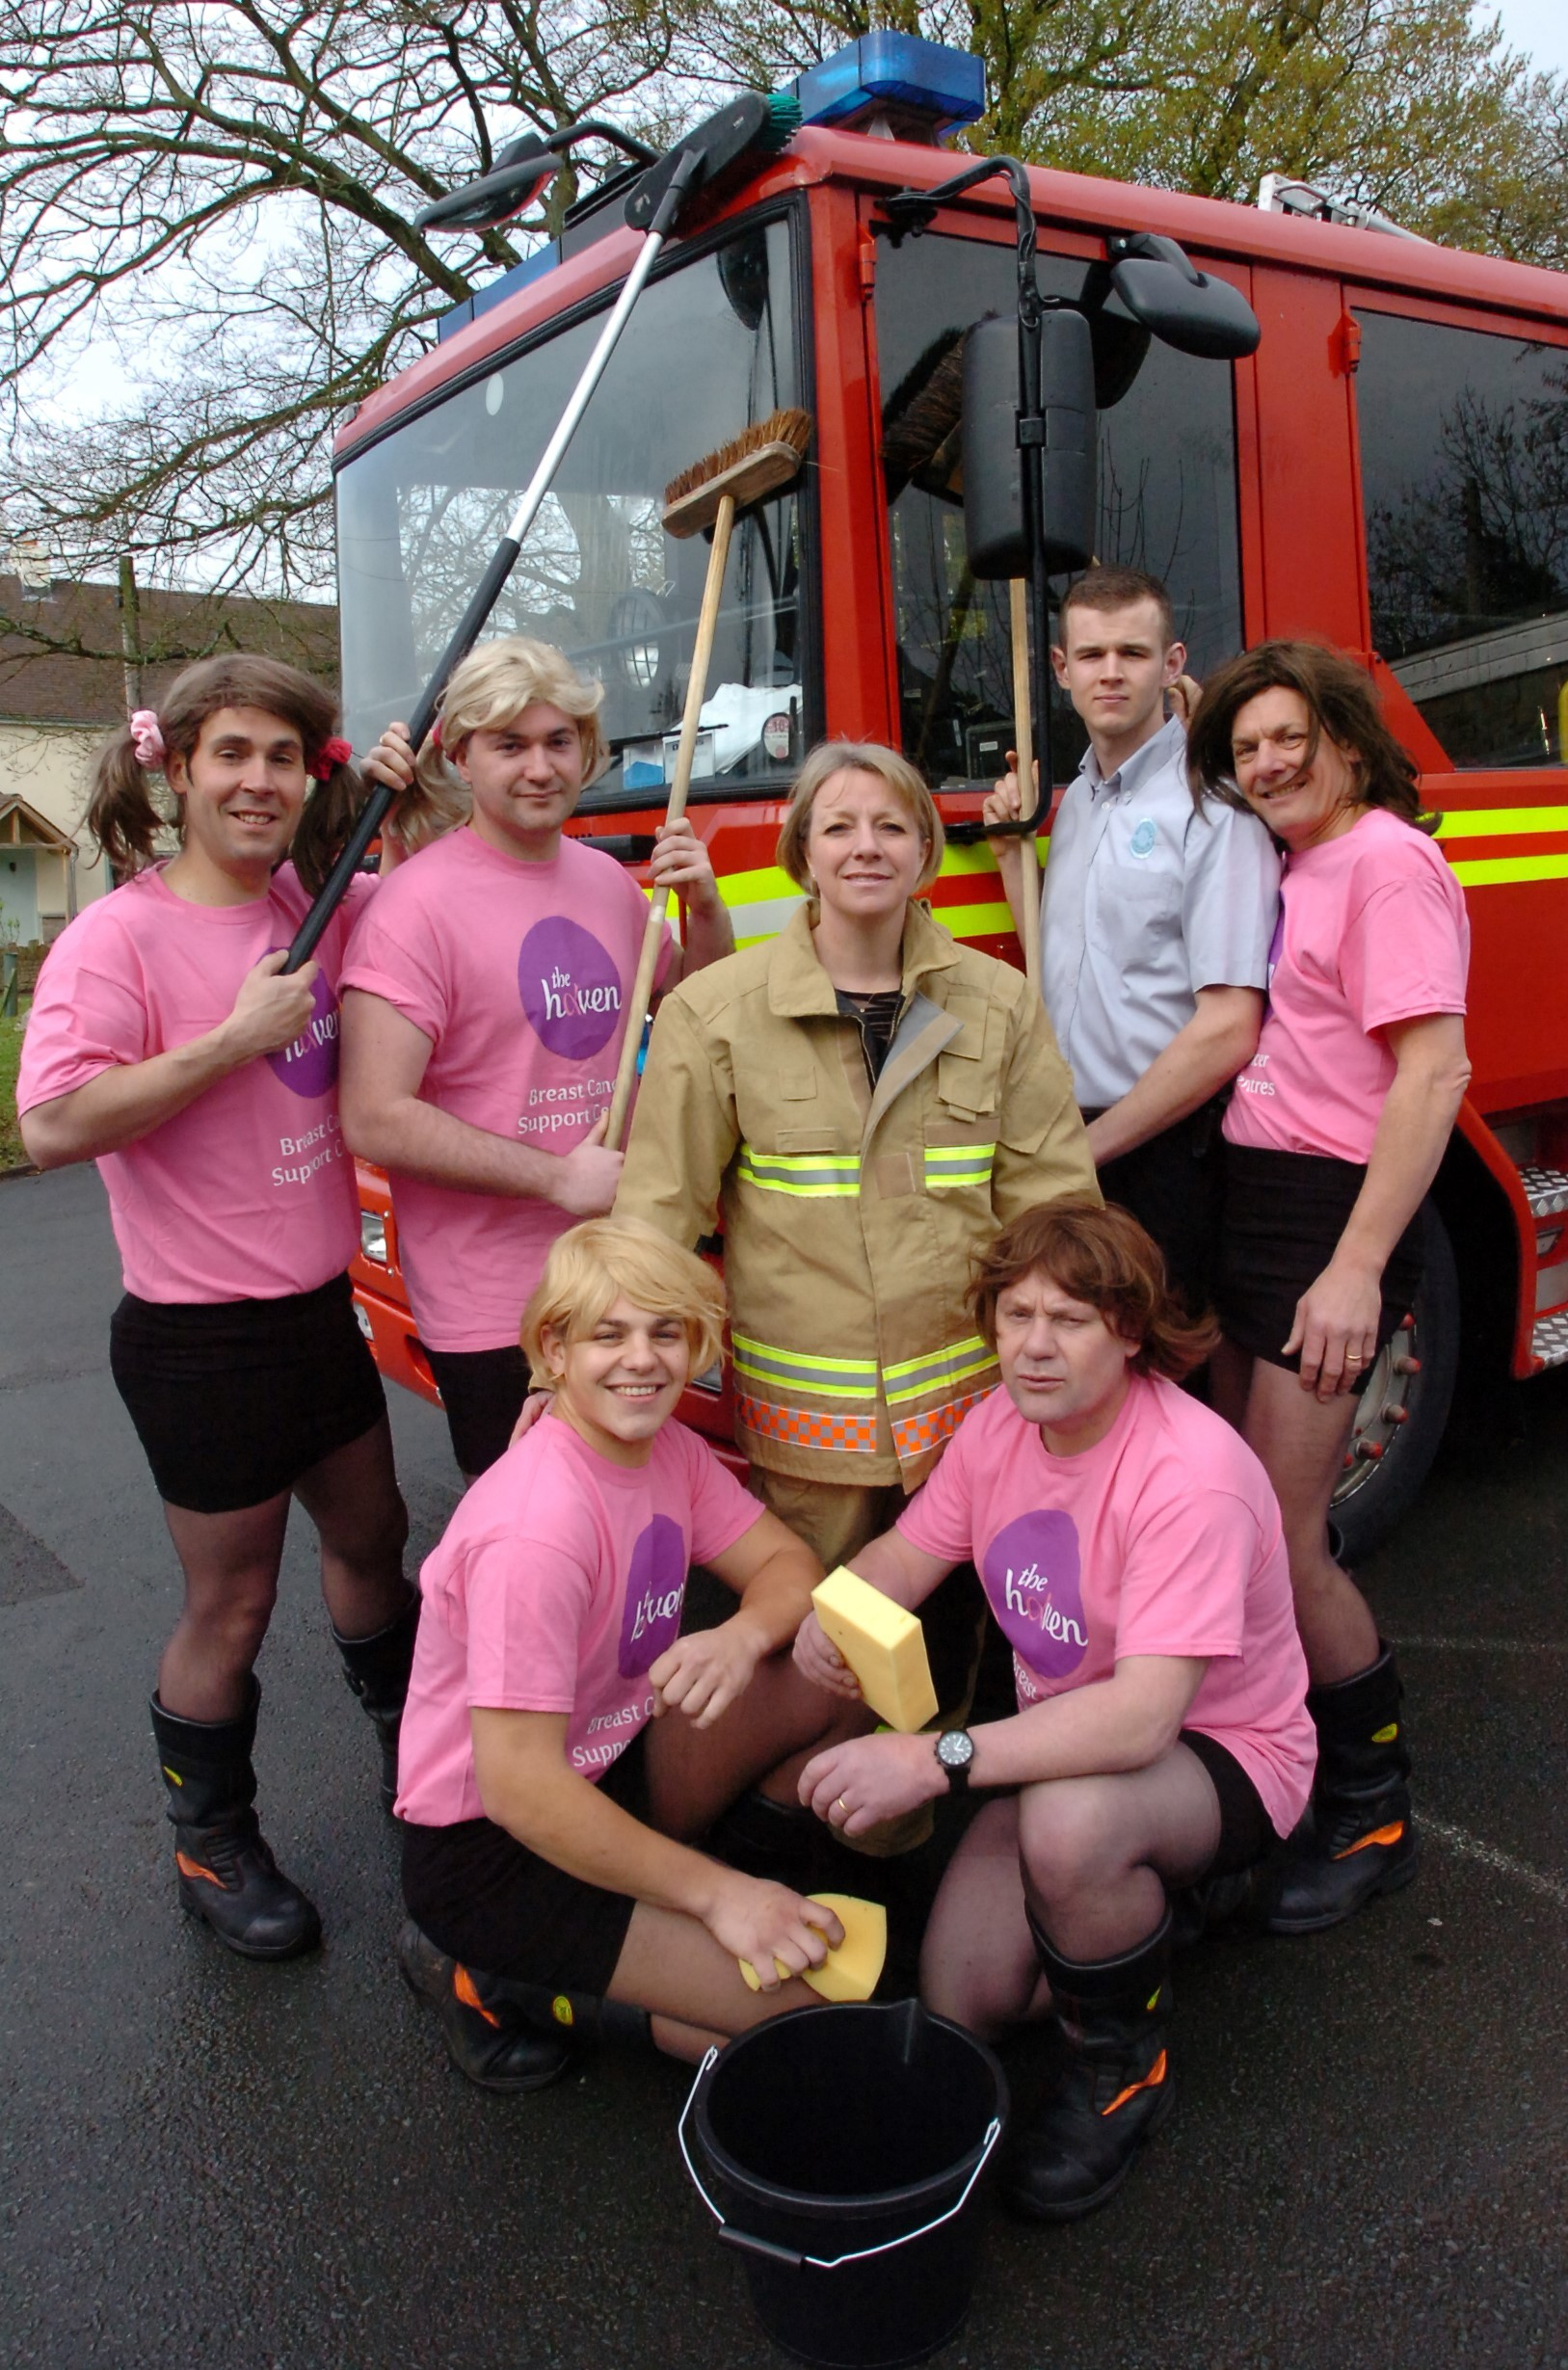 Firefighters swap hard hats for skirts and ribbons for charity